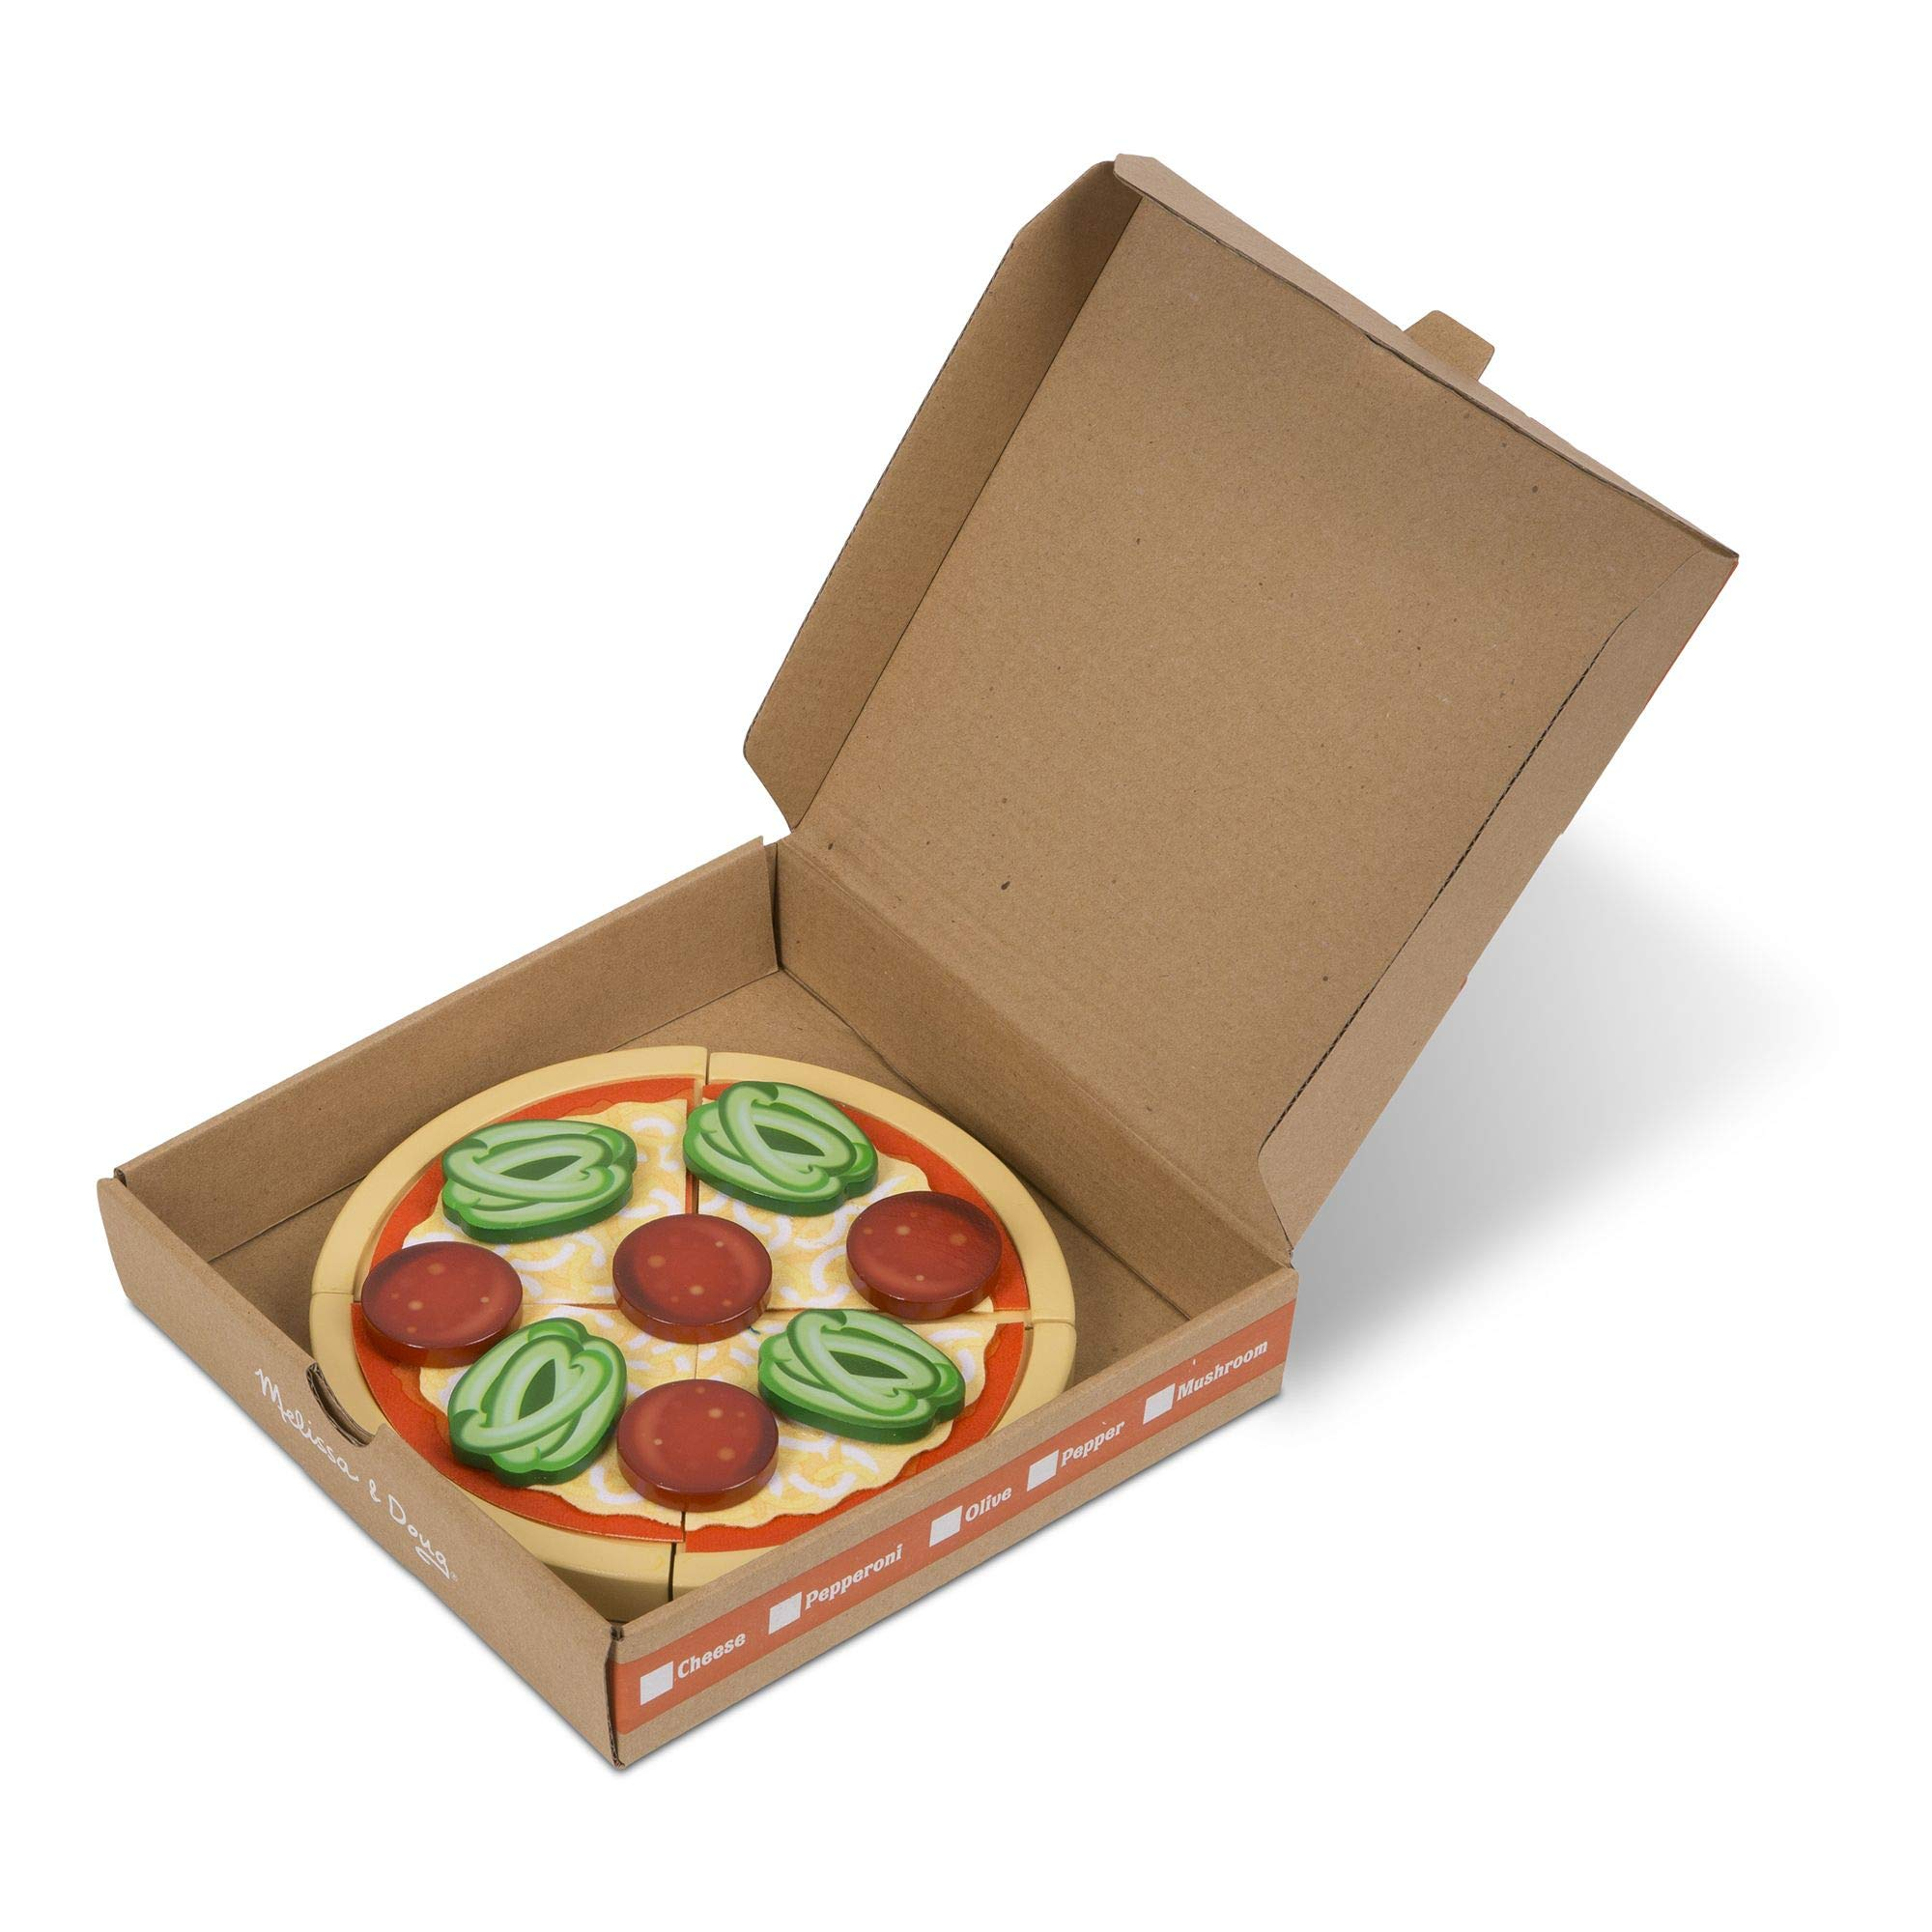 Melissa & Doug Top and Bake Wooden Pizza Counter Play Food Set (Pretend Play, Helps Support Cognitive Development, 34 Pieces, 7.75'' H x 9.25'' W x 13.25'' L) by Melissa & Doug (Image #3)